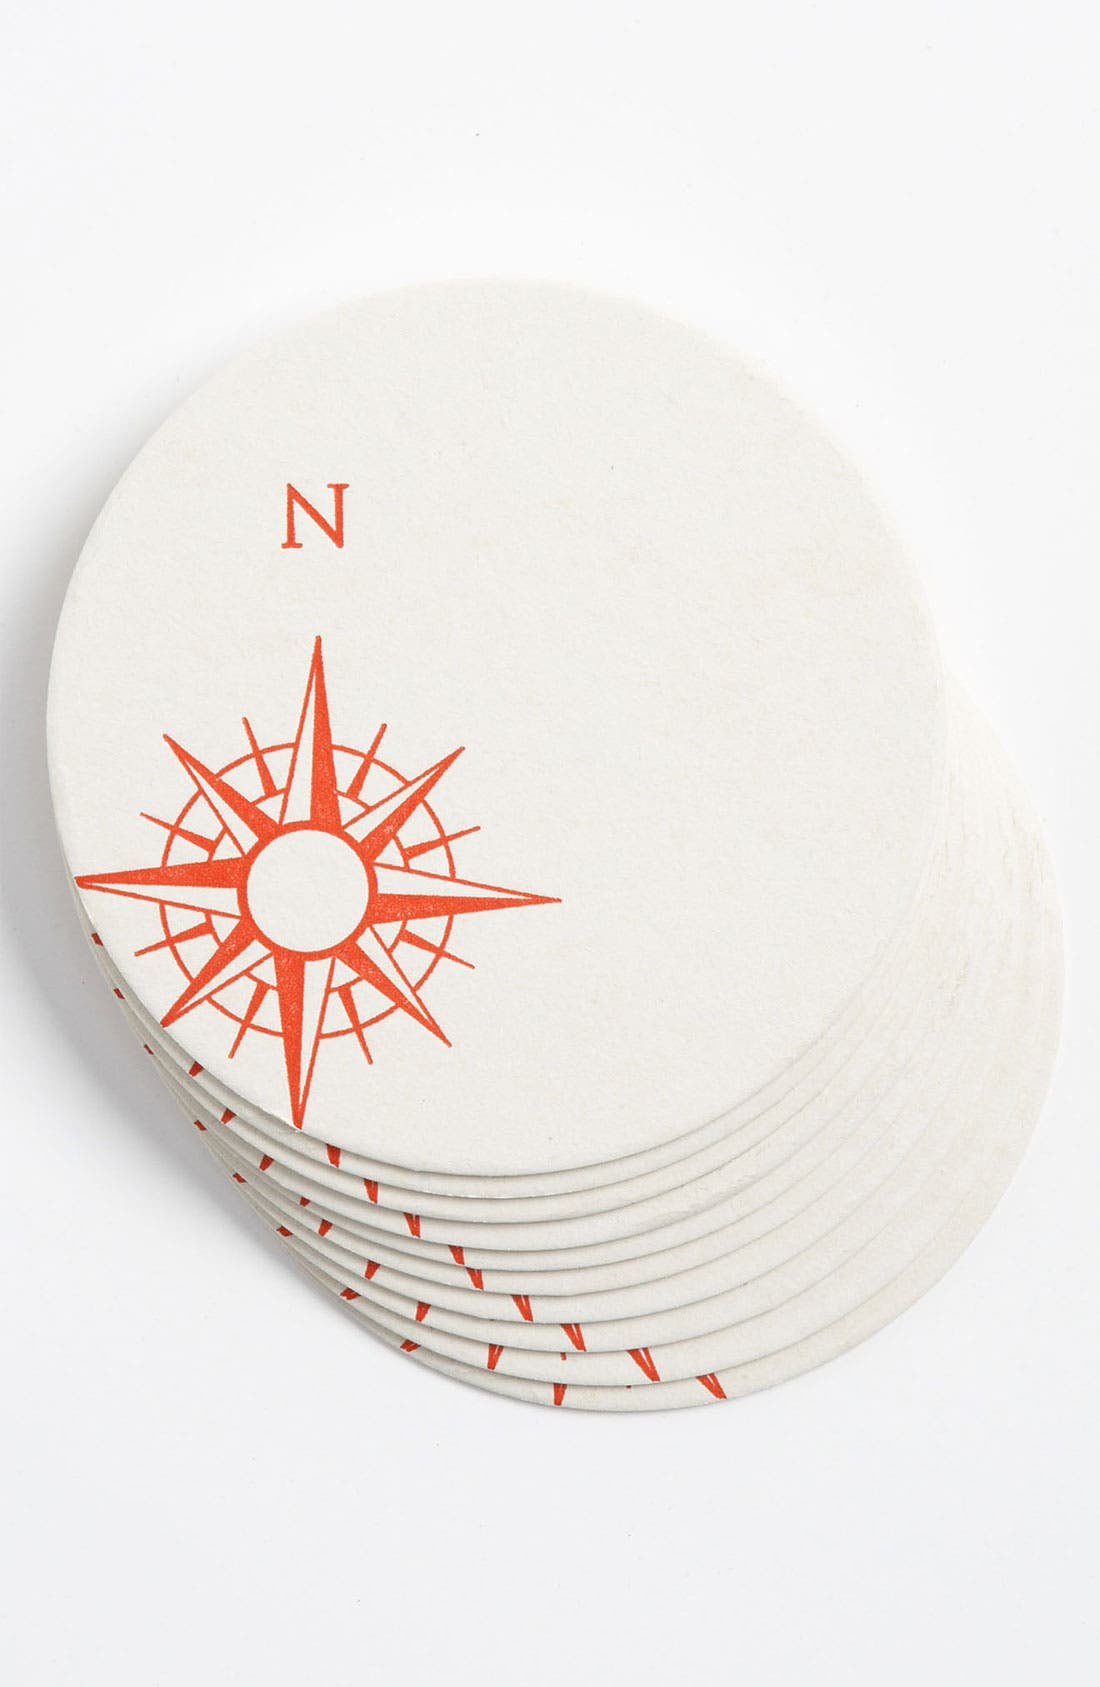 Alternate Image 1 Selected - 'Compass' Letterpress Coasters (Set of 10)